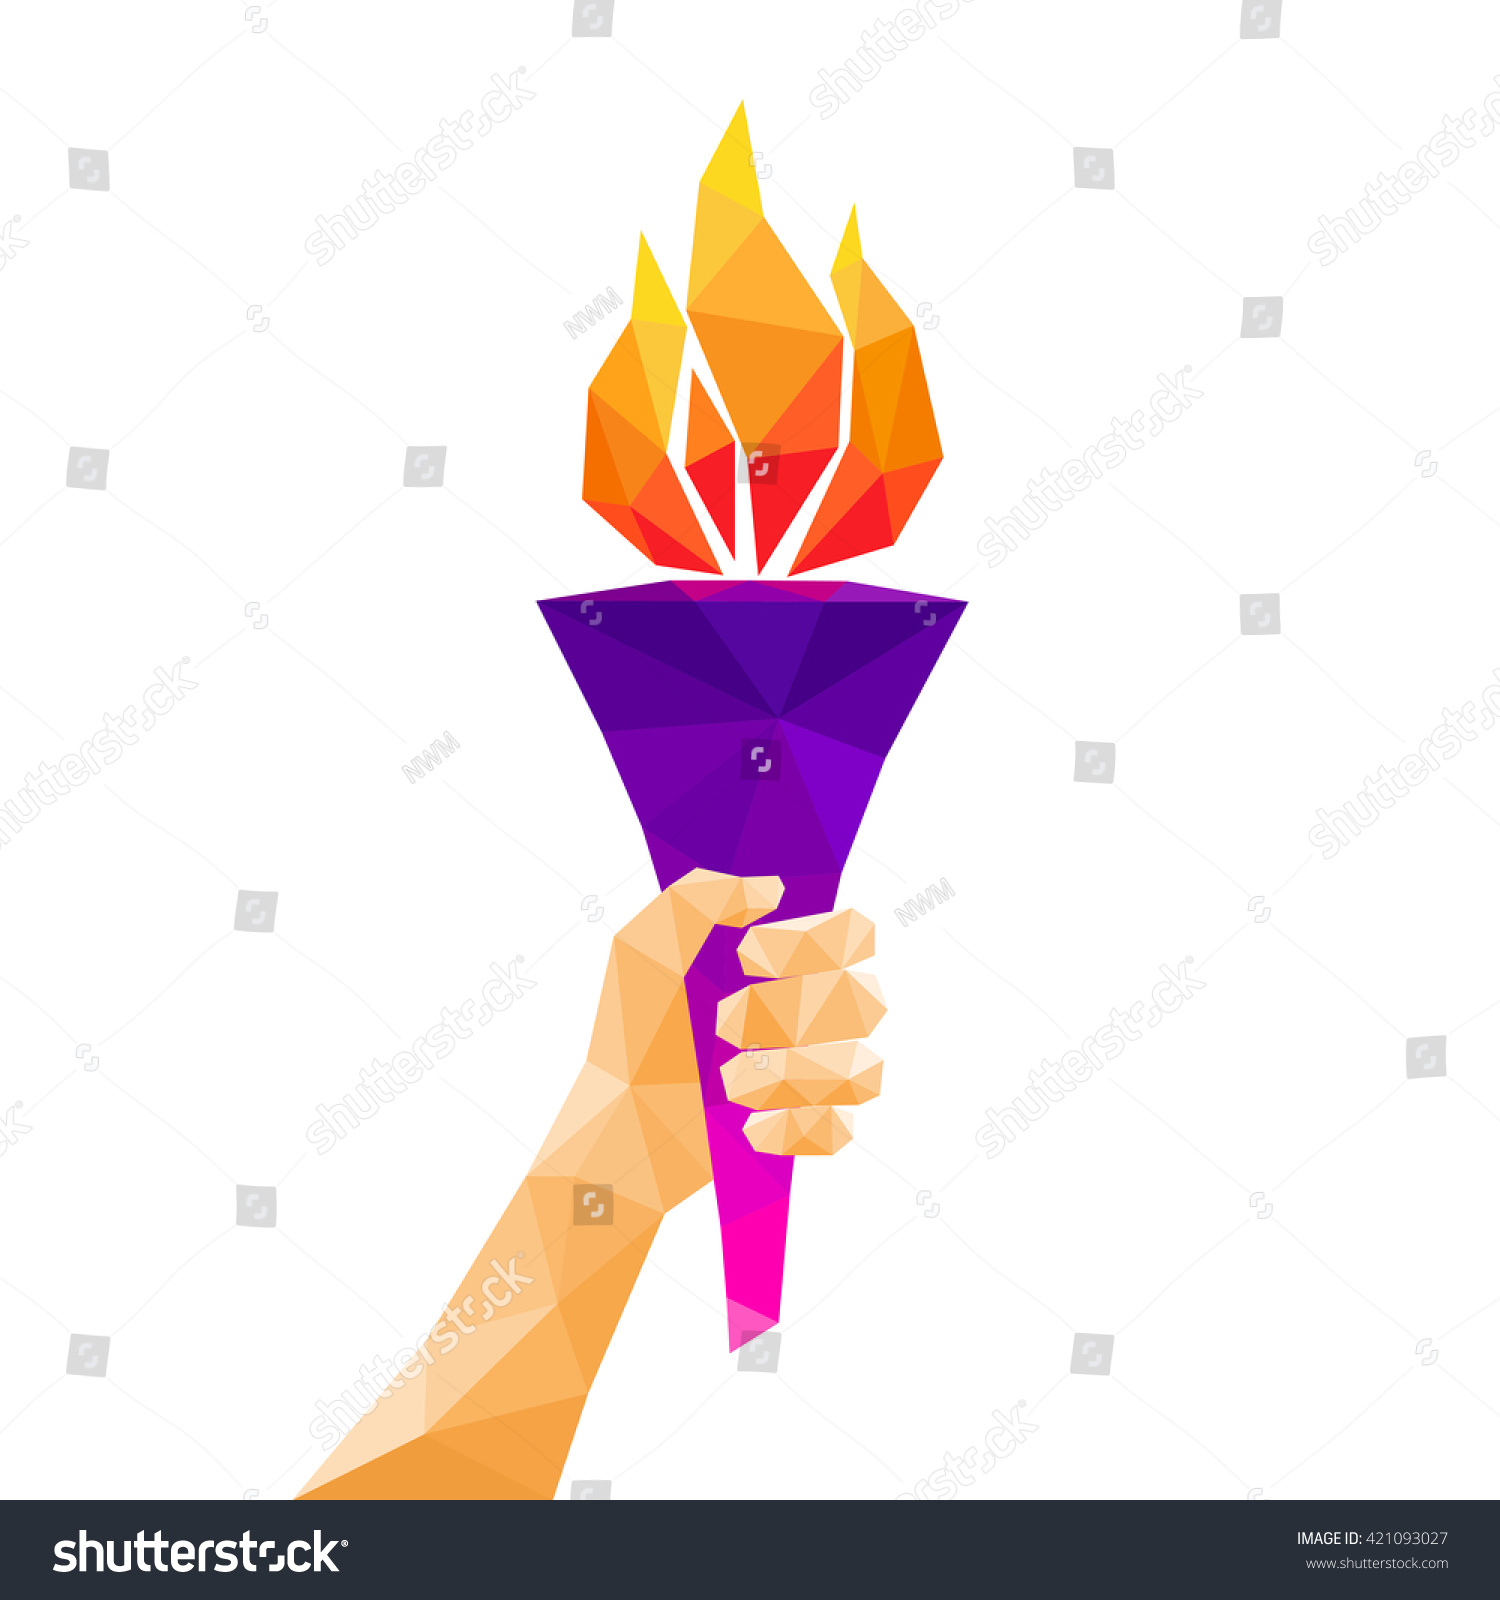 Hand holding torch Low poly abstract geometric design Vector illustration